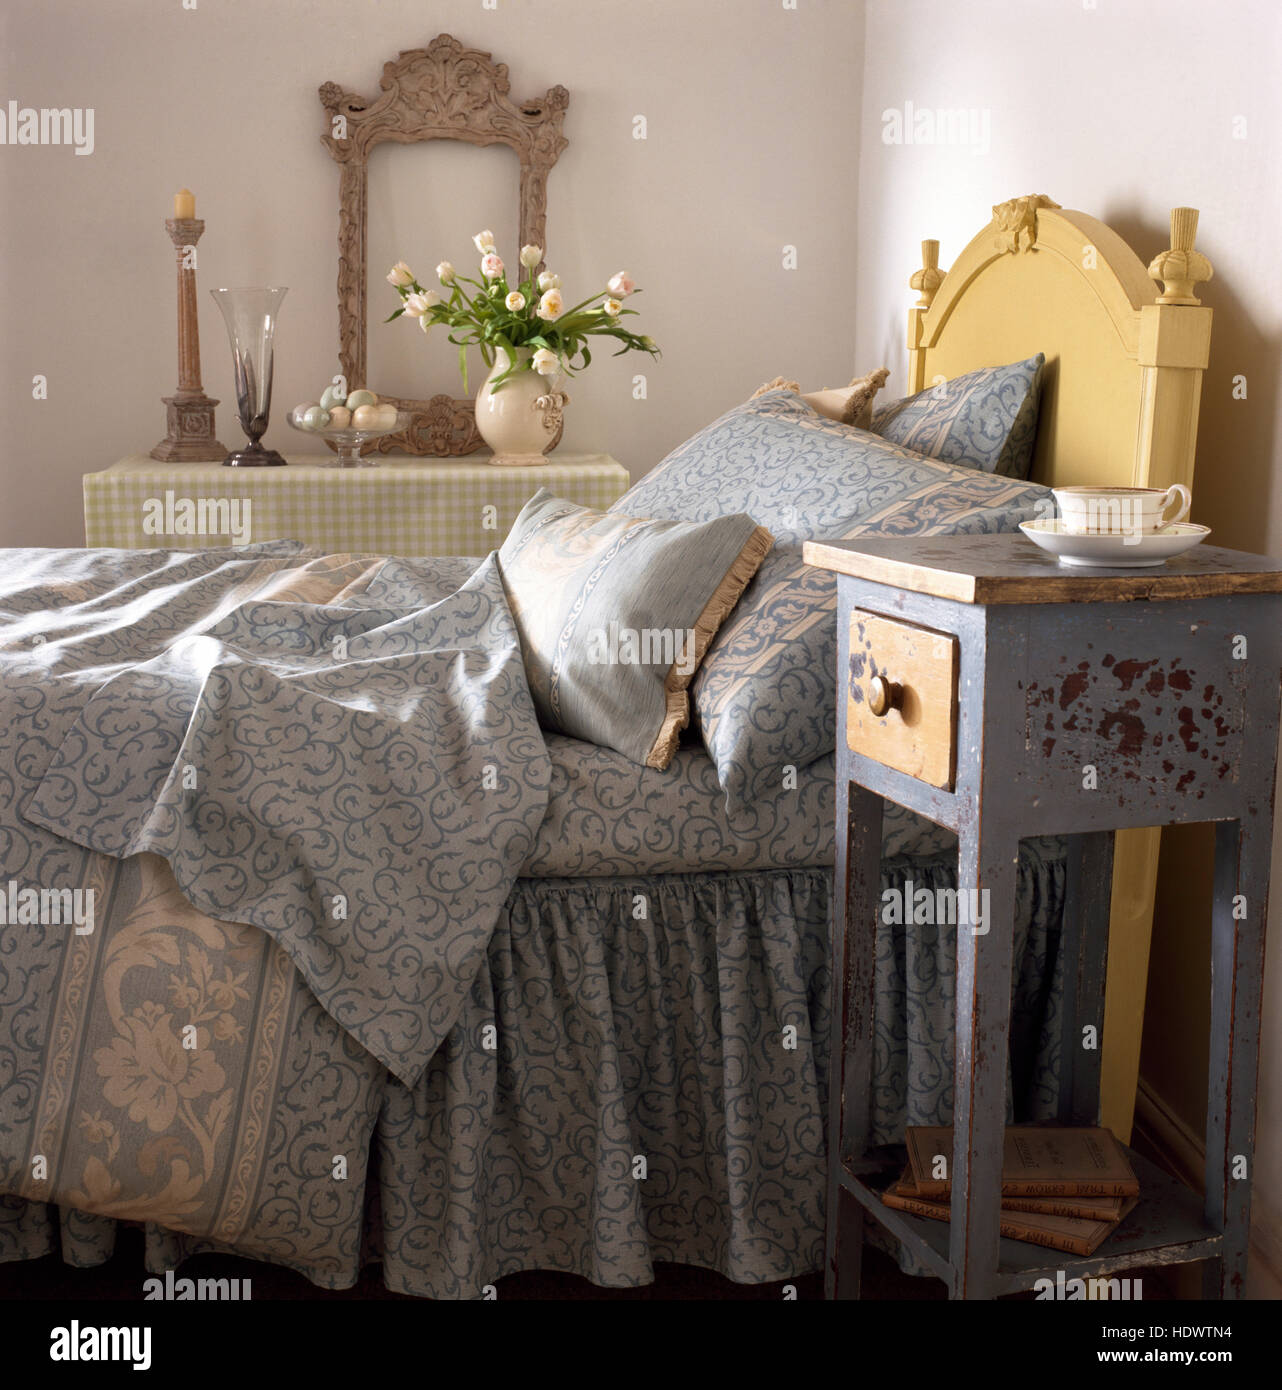 Small distressed painted bedside table beside bed with a pale gray patterned duvet and pillows in an economy style - Stock Image